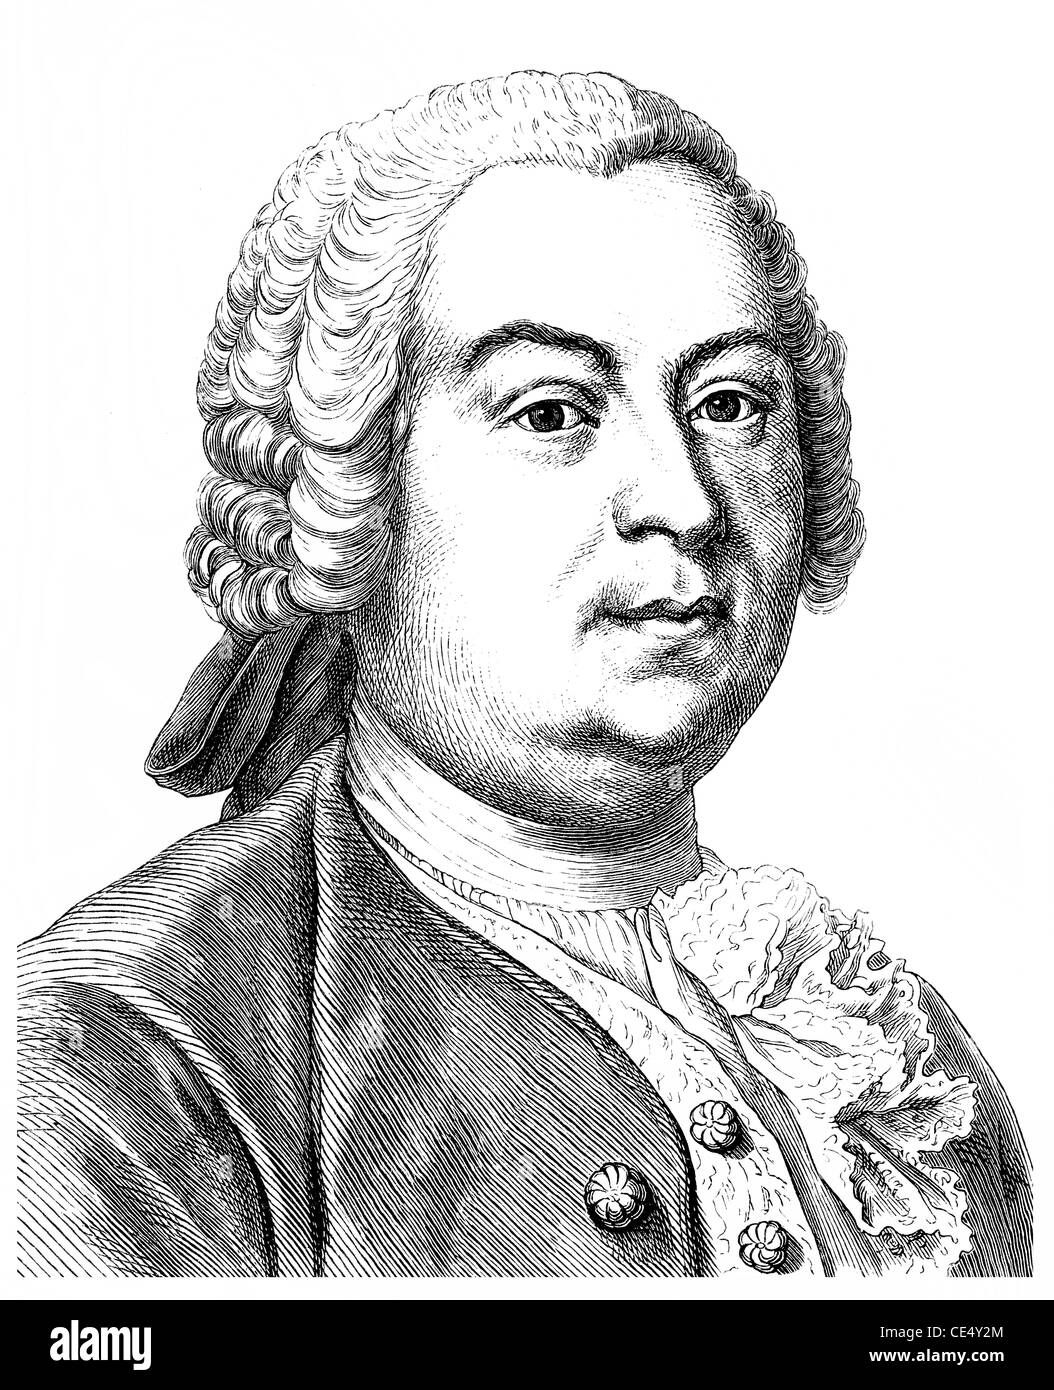 Johann Christoph Gottsched, 1700 - 1766, a German writer, dramatist and literary theorists of the Enlightenment Stock Photo